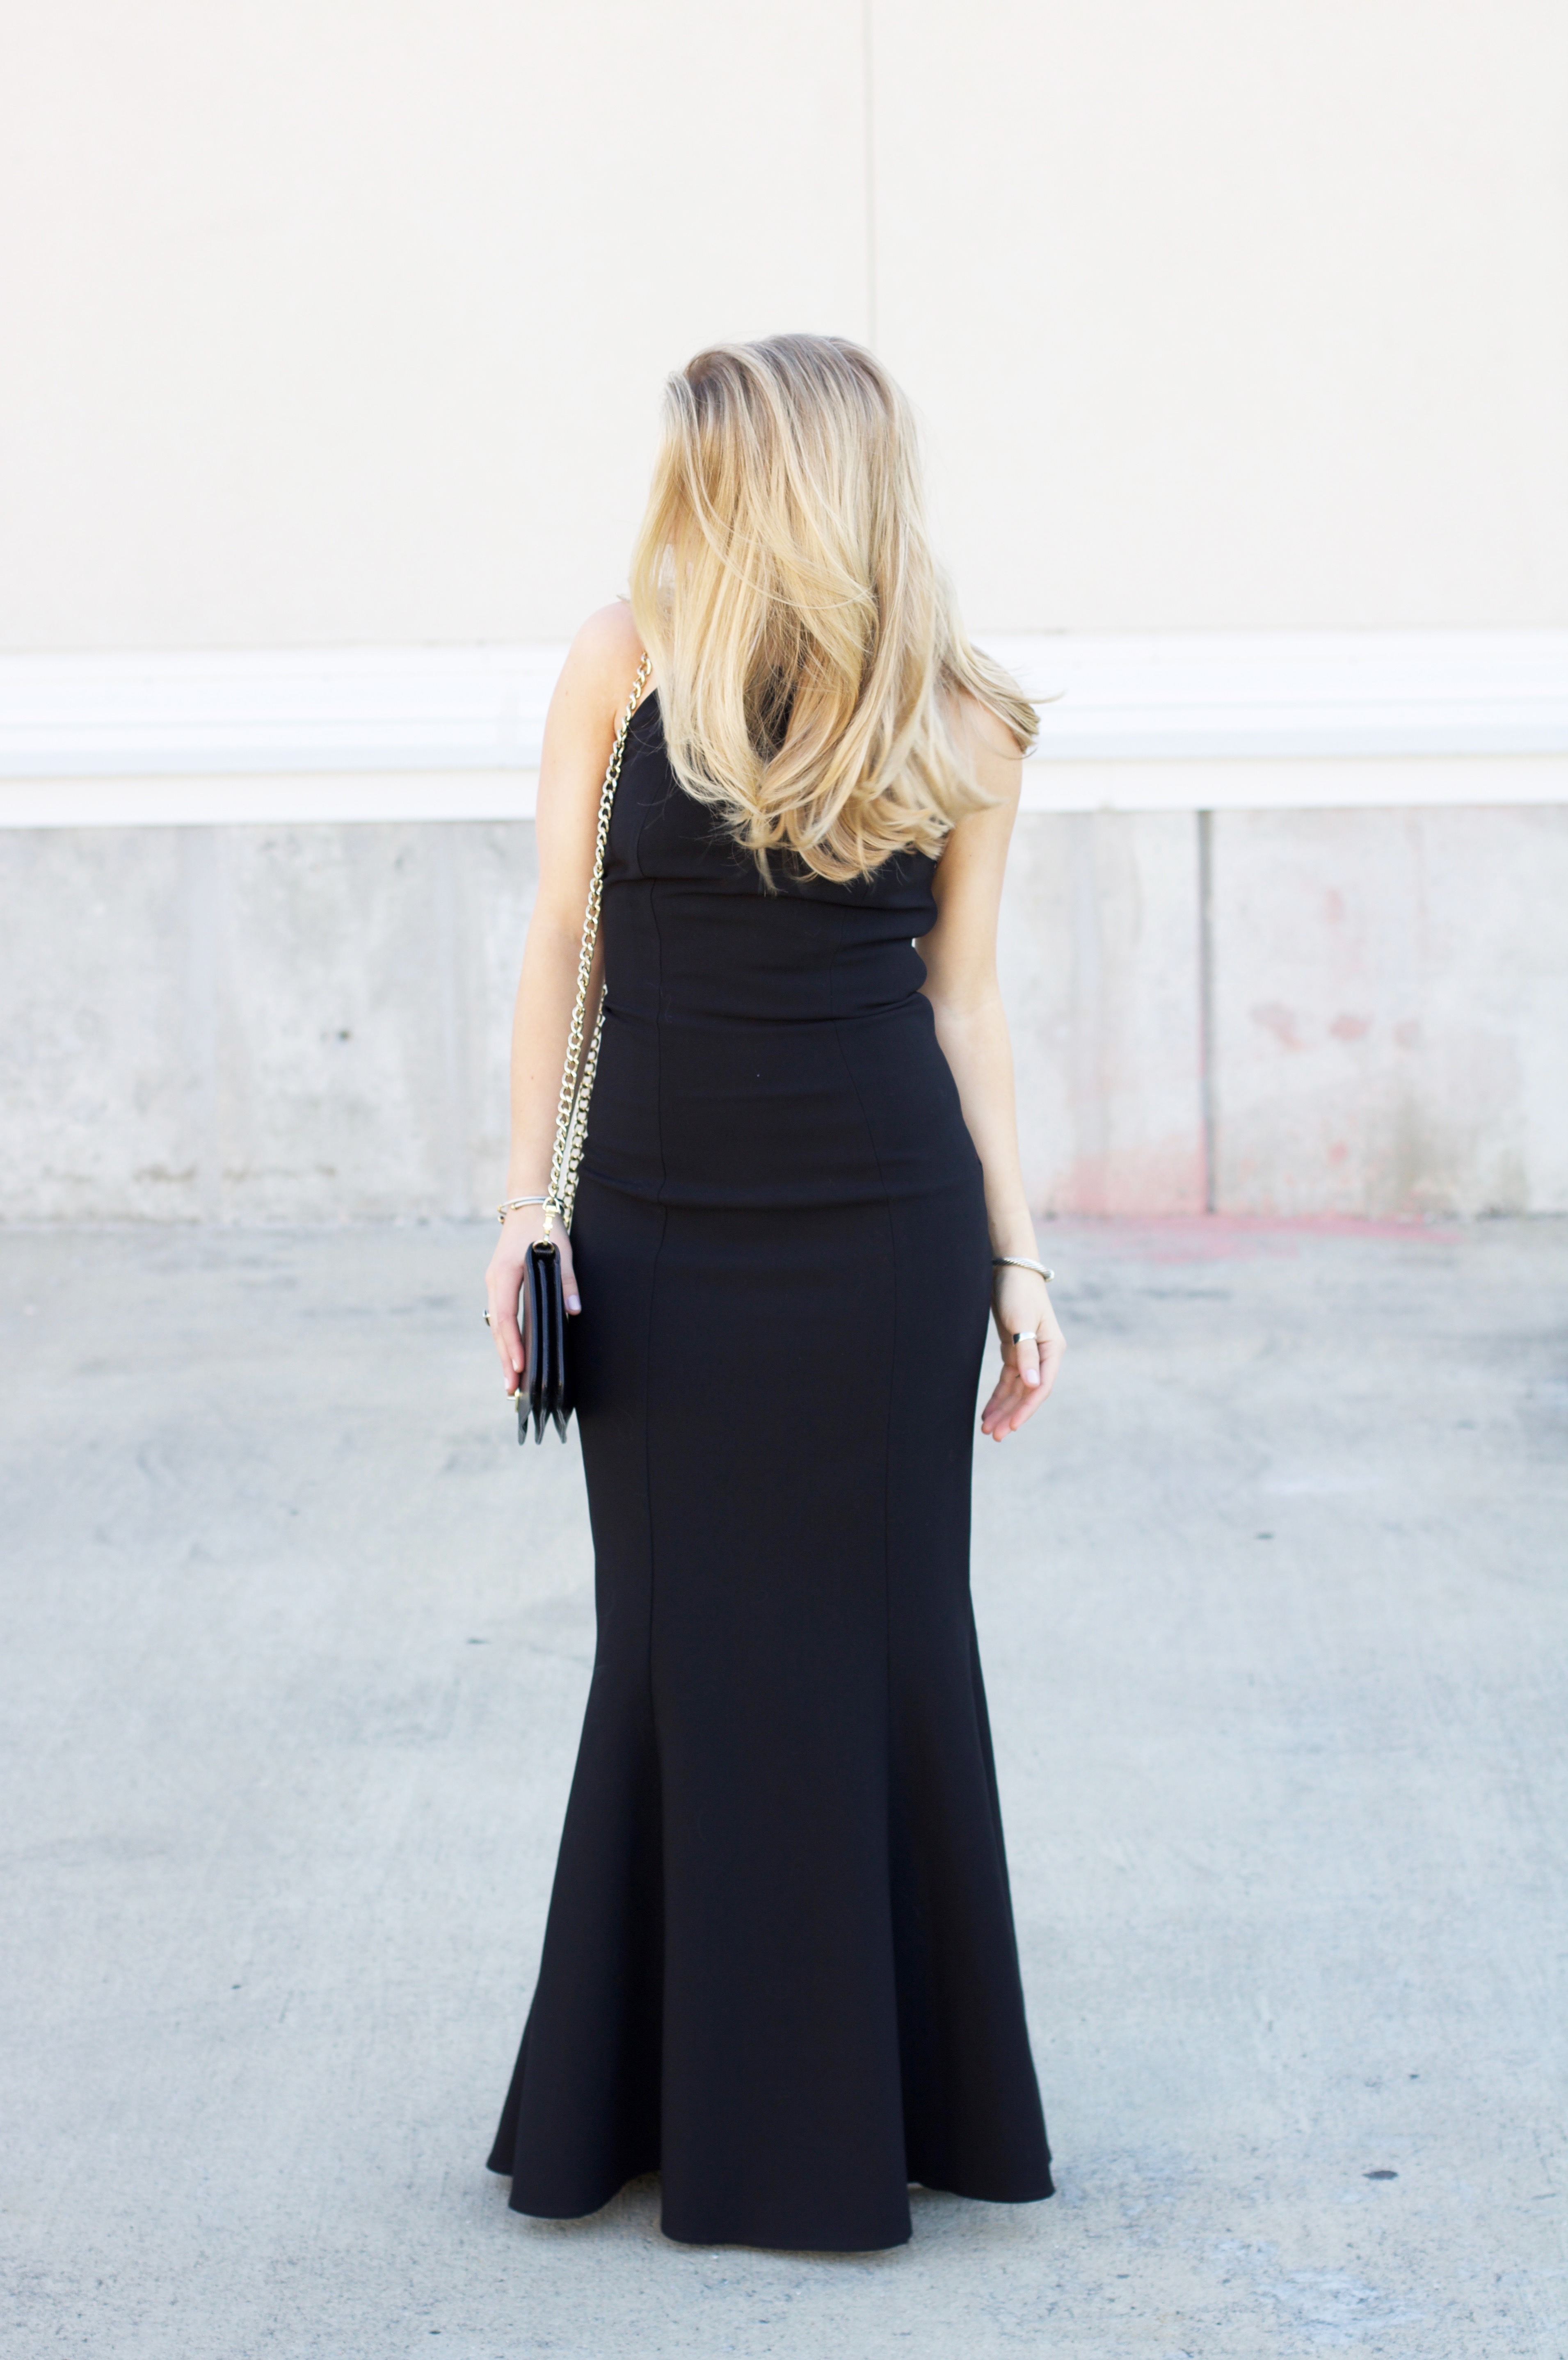 Rent The Runway - What To Wear To A Winter Wedding